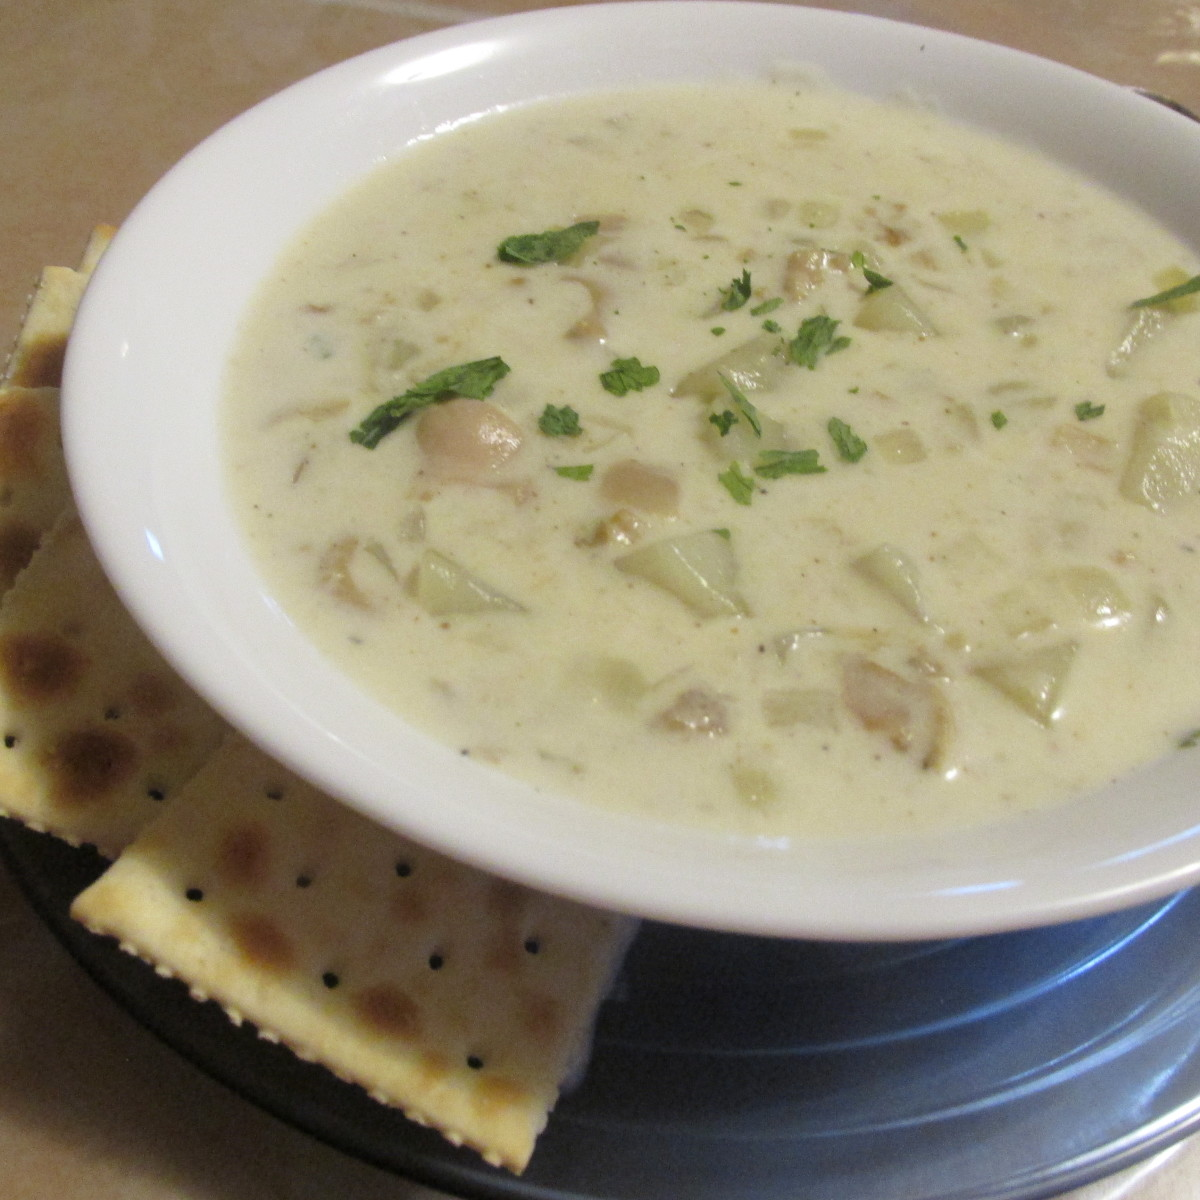 How to Make White Clam Chowder